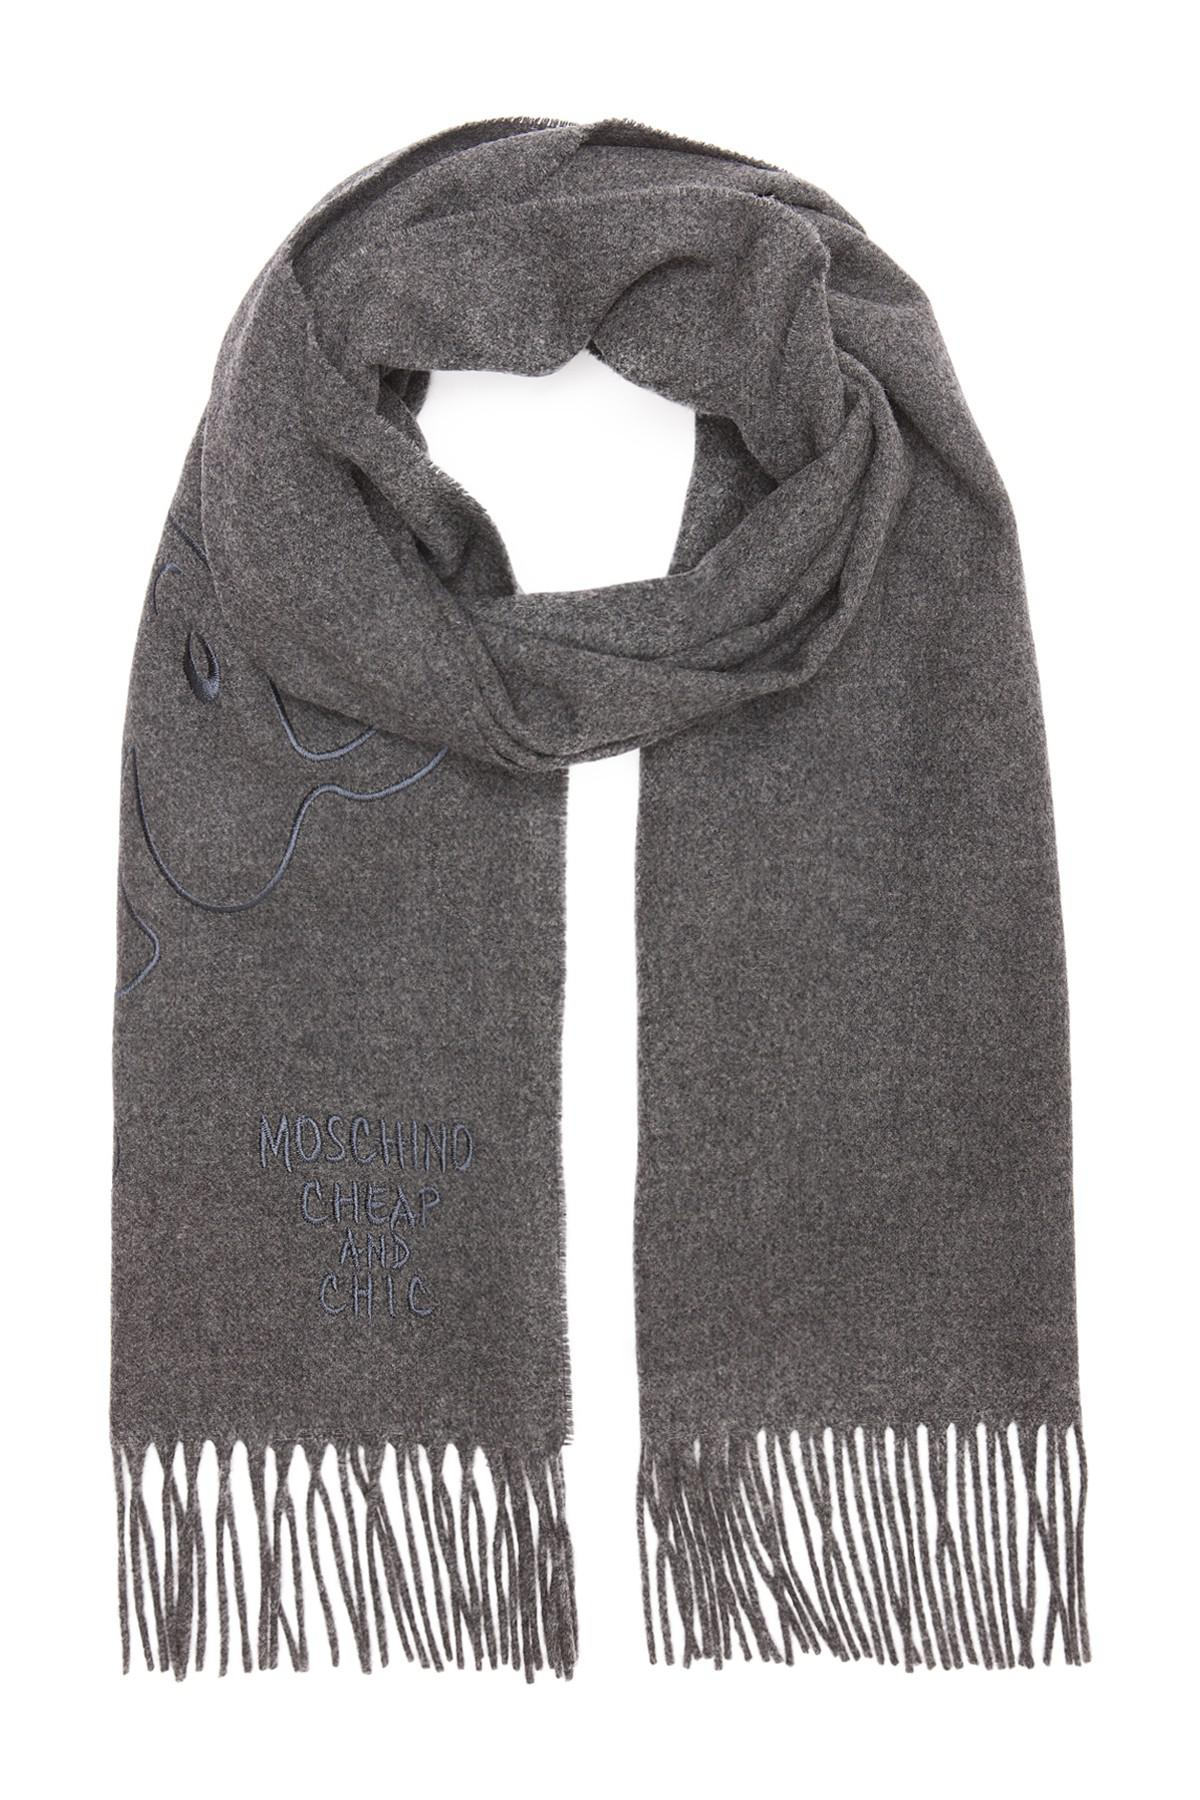 a5b2621a7b Moschino Olive Oil Embroidery Wool Scarf in Gray - Lyst